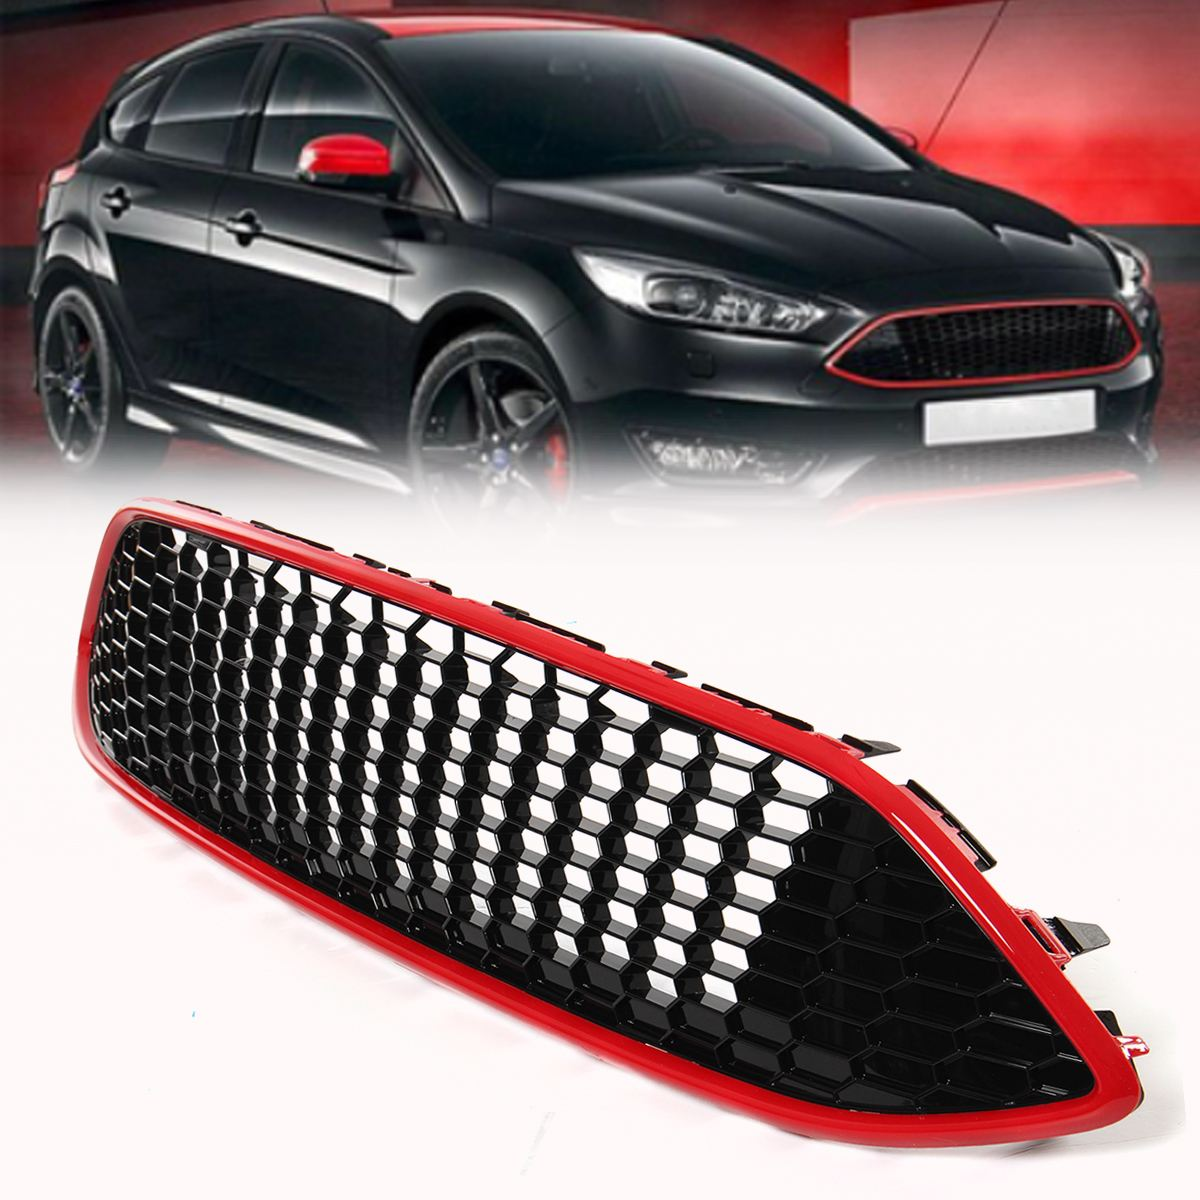 Spary Painted Honeycombed Nest Bee Grille Grill For Ford For Focus MK3 ST wiper blades for ford focus mk3 international model 28